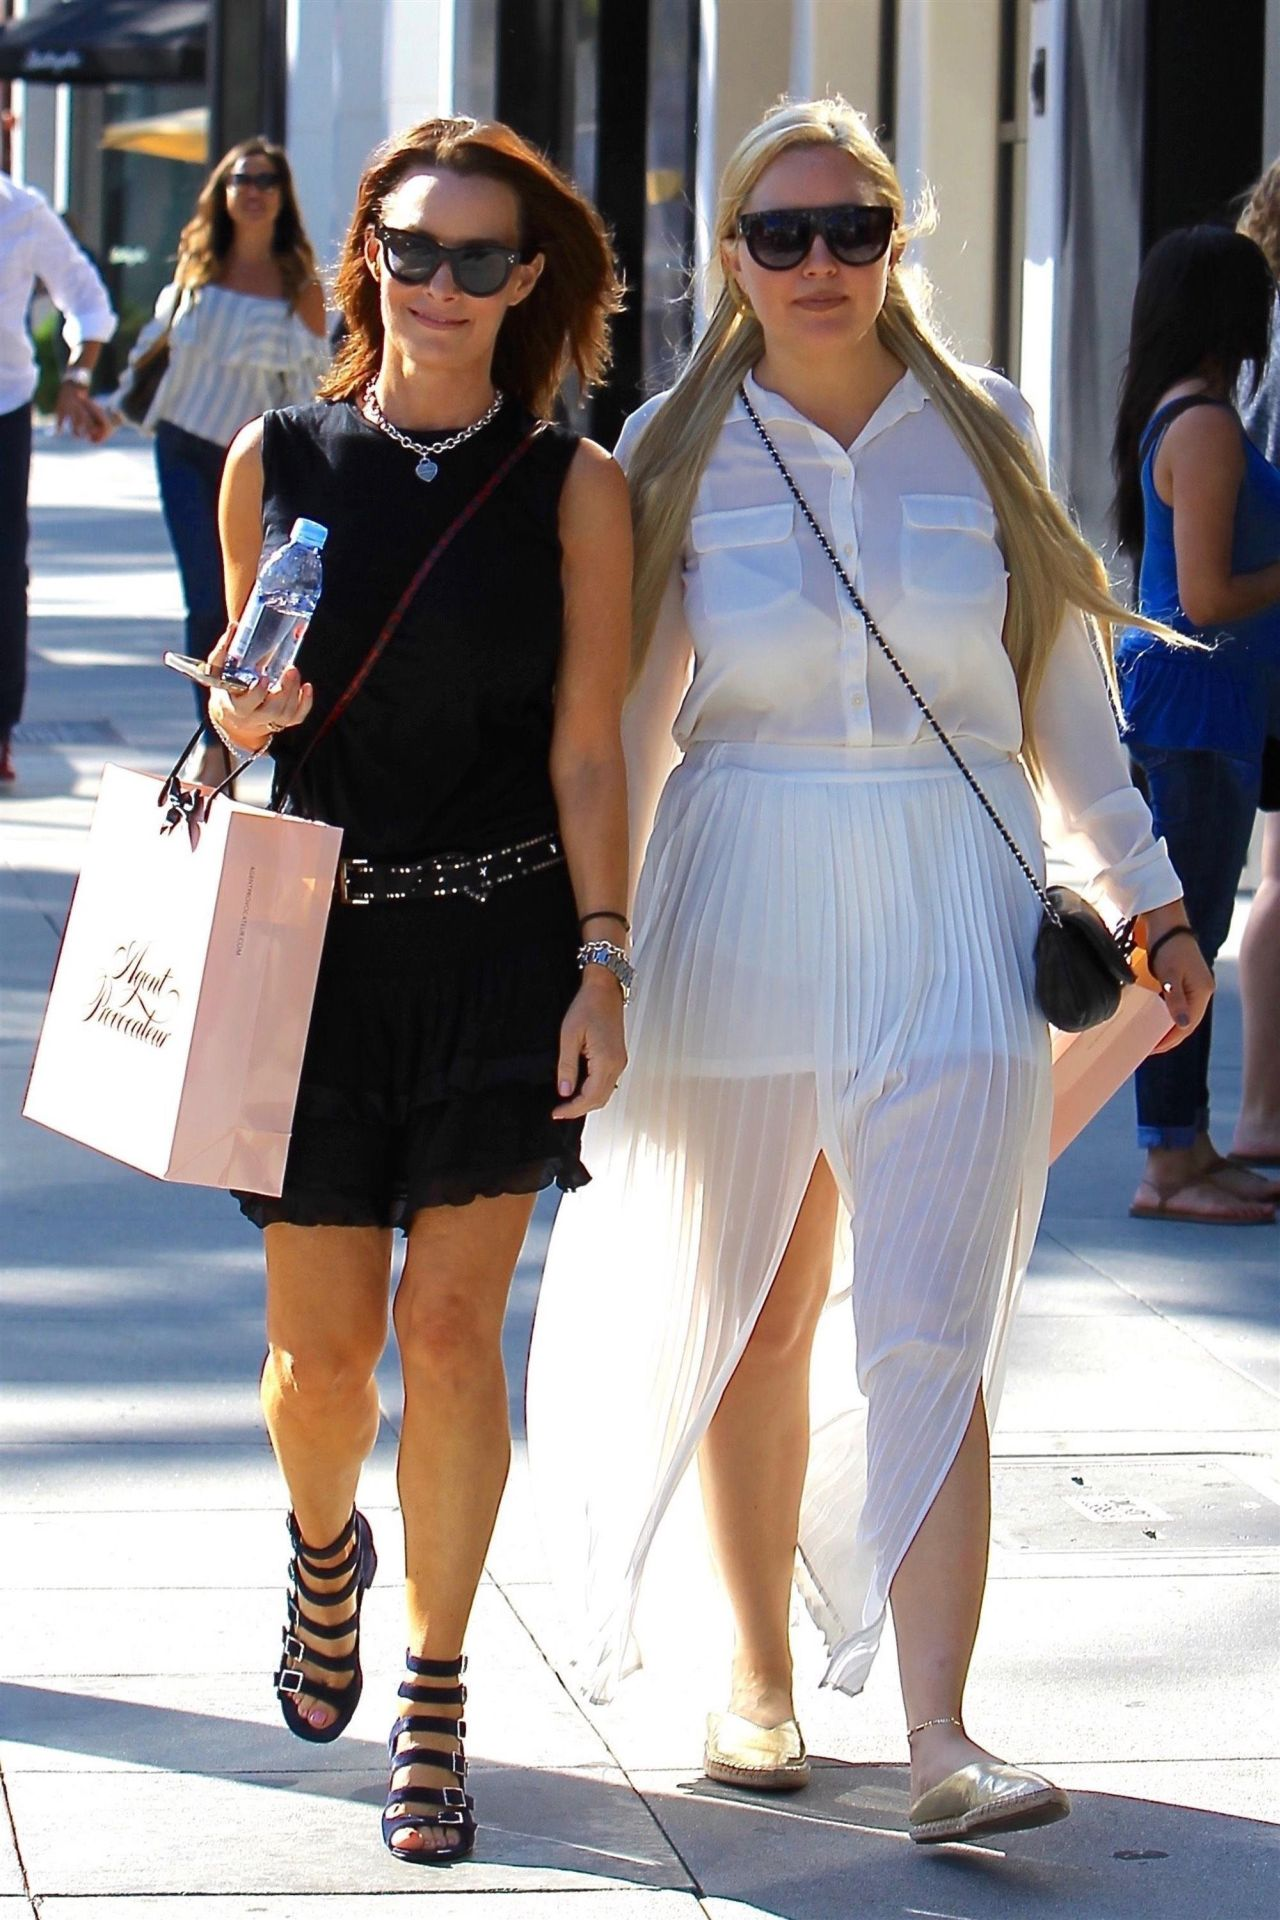 Beverly Hills, CA  - *EXCLUSIVE*  - Actress Amanda Bynes was spotted doing some shopping with a friend on Rodeo Drive in Beverly Hills.  Pictured: Amanda Bynes  BACKGRID USA 22 JUNE 2017   BYLINE MUST READ: Genghis / BACKGRID  USA: +1 310 798 9111 / usasales@backgrid.com  UK: +44 208 344 2007 / uksales@backgrid.com  *UK Clients - Pictures Containing Children Please Pixelate Face Prior To Publication*